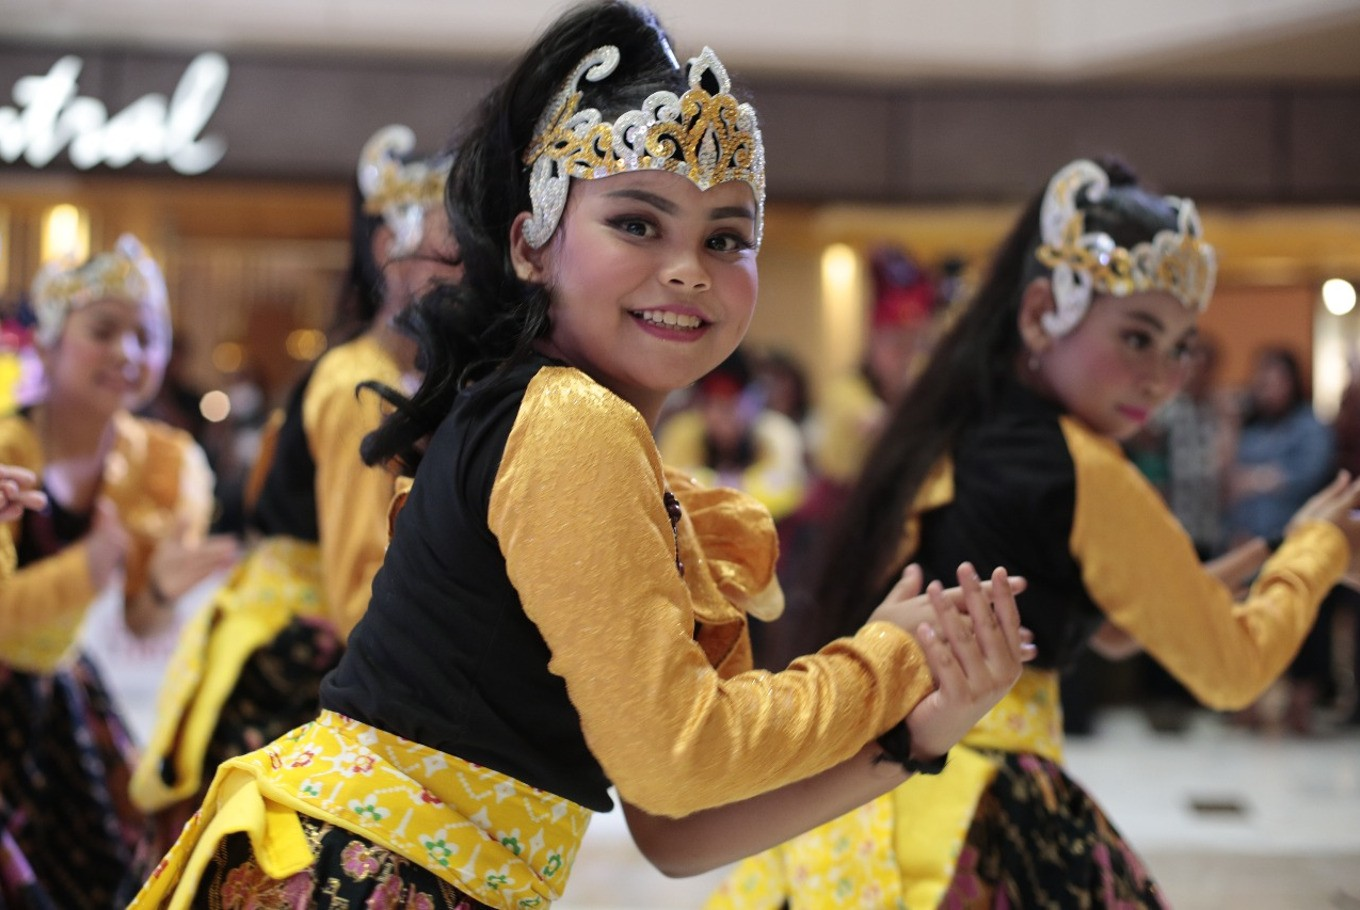 One of the participants of Indonesia Menari 2017 shows off her dance moves on Sunday, at Grand Indonesia Mall, Central Jakarta.